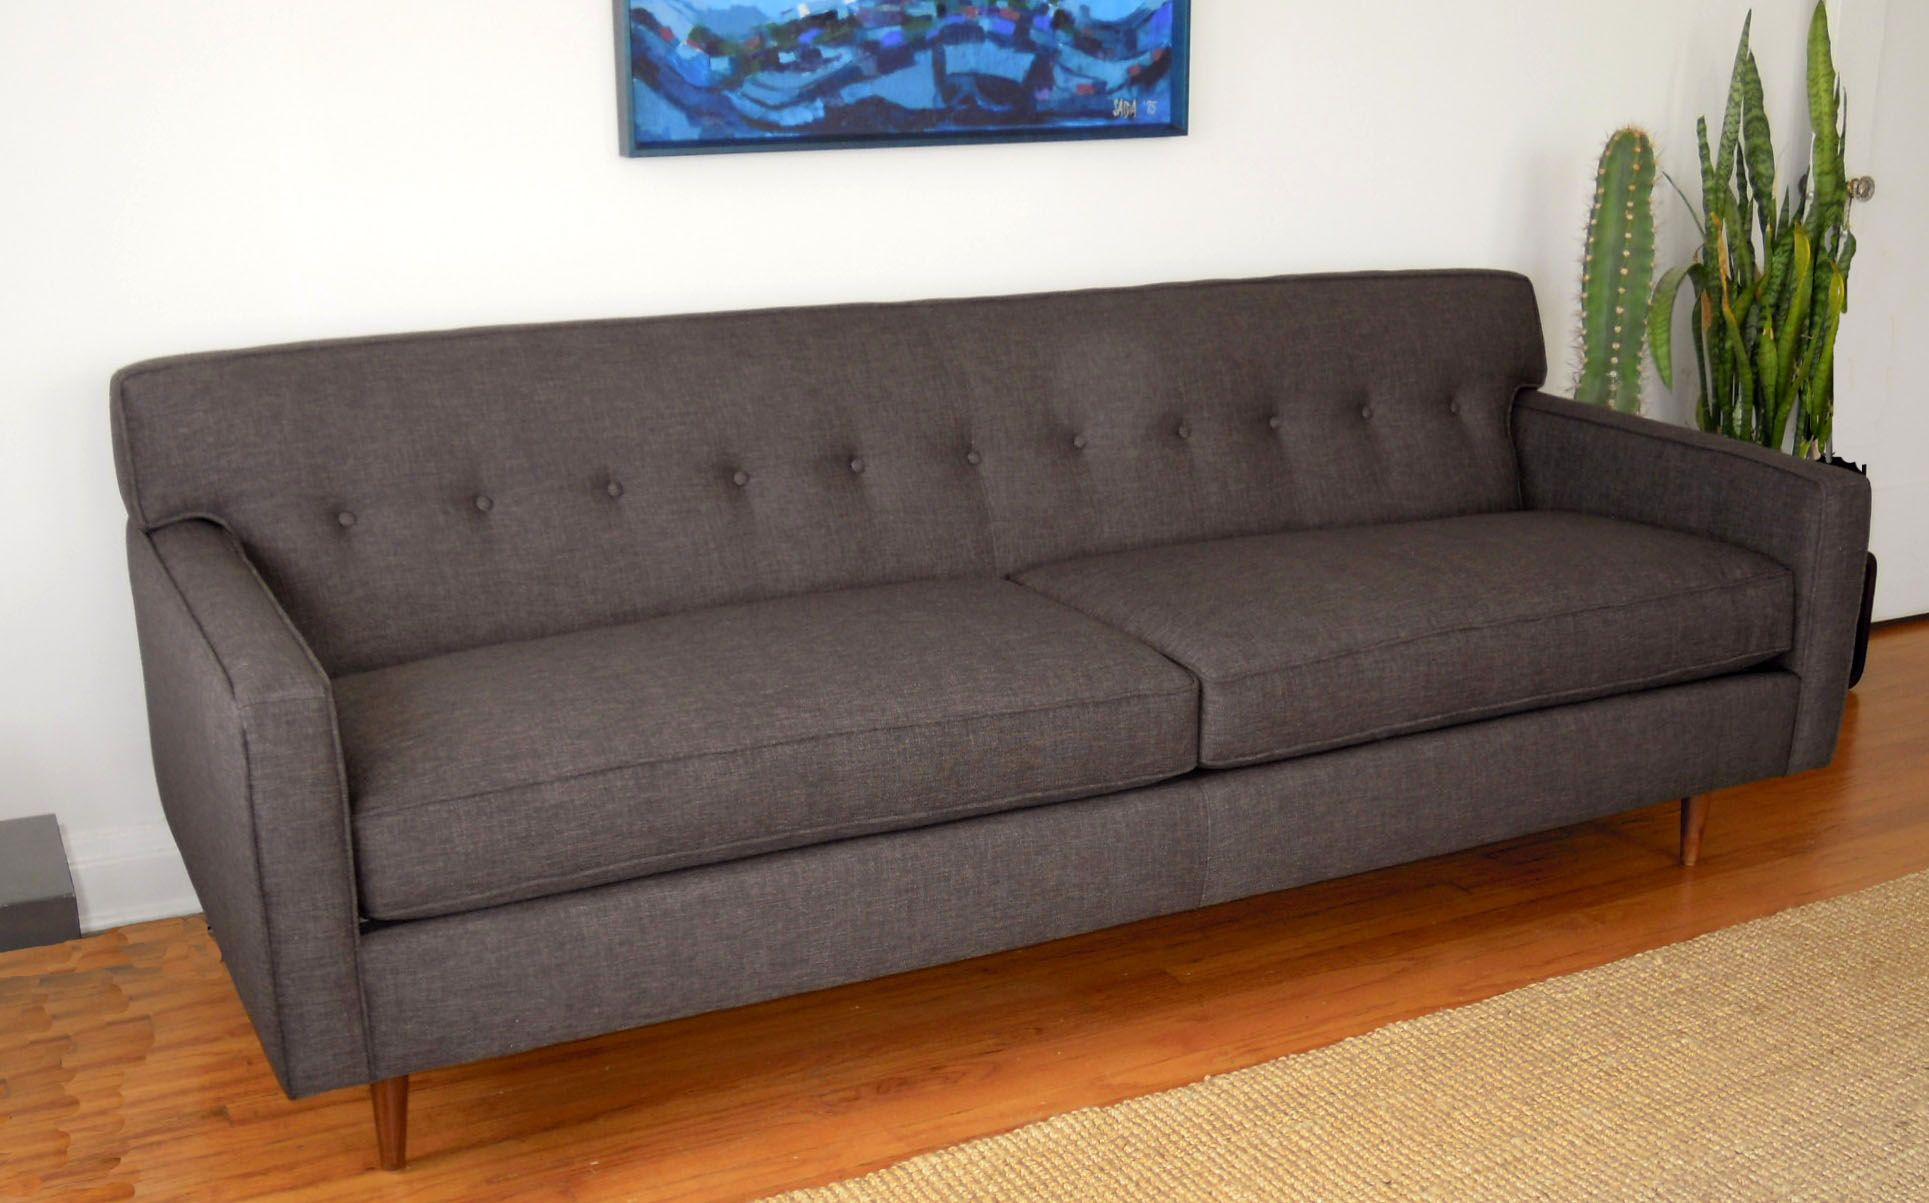 average height of a sofa seat karlstad review uk anders 1175 fully customizable width